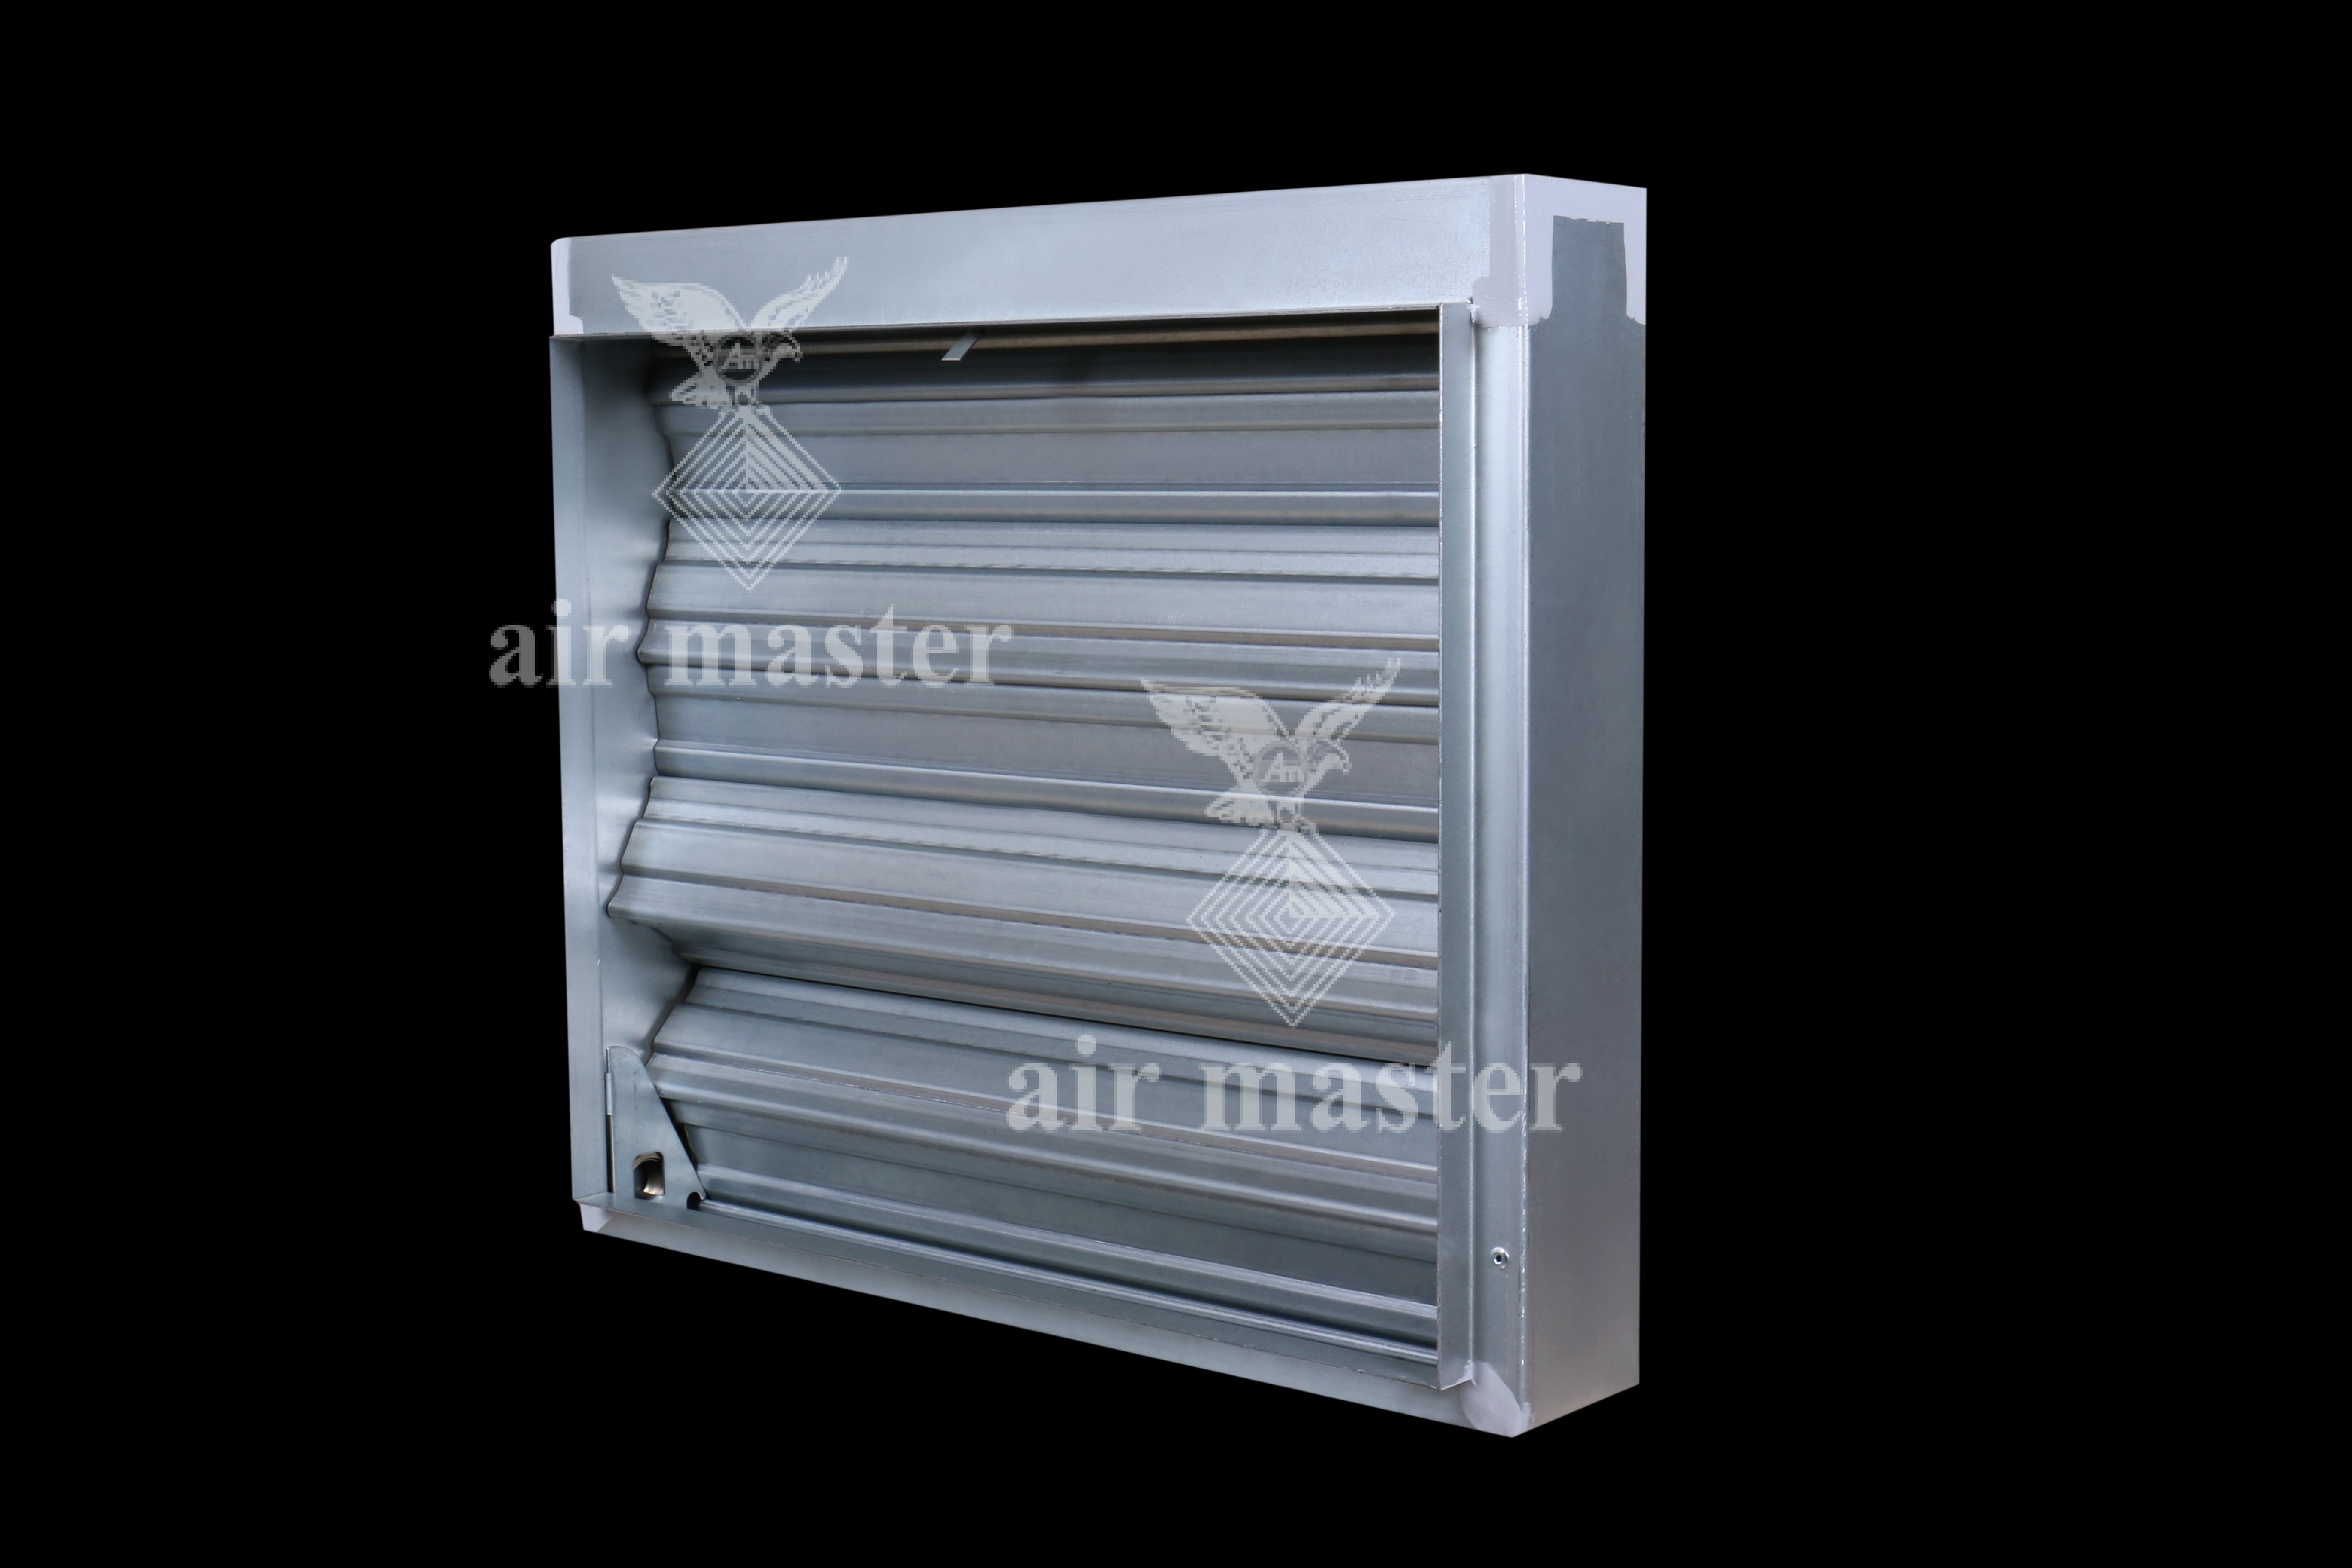 Brand New 3791 Motorized Air Damper Water Cooled